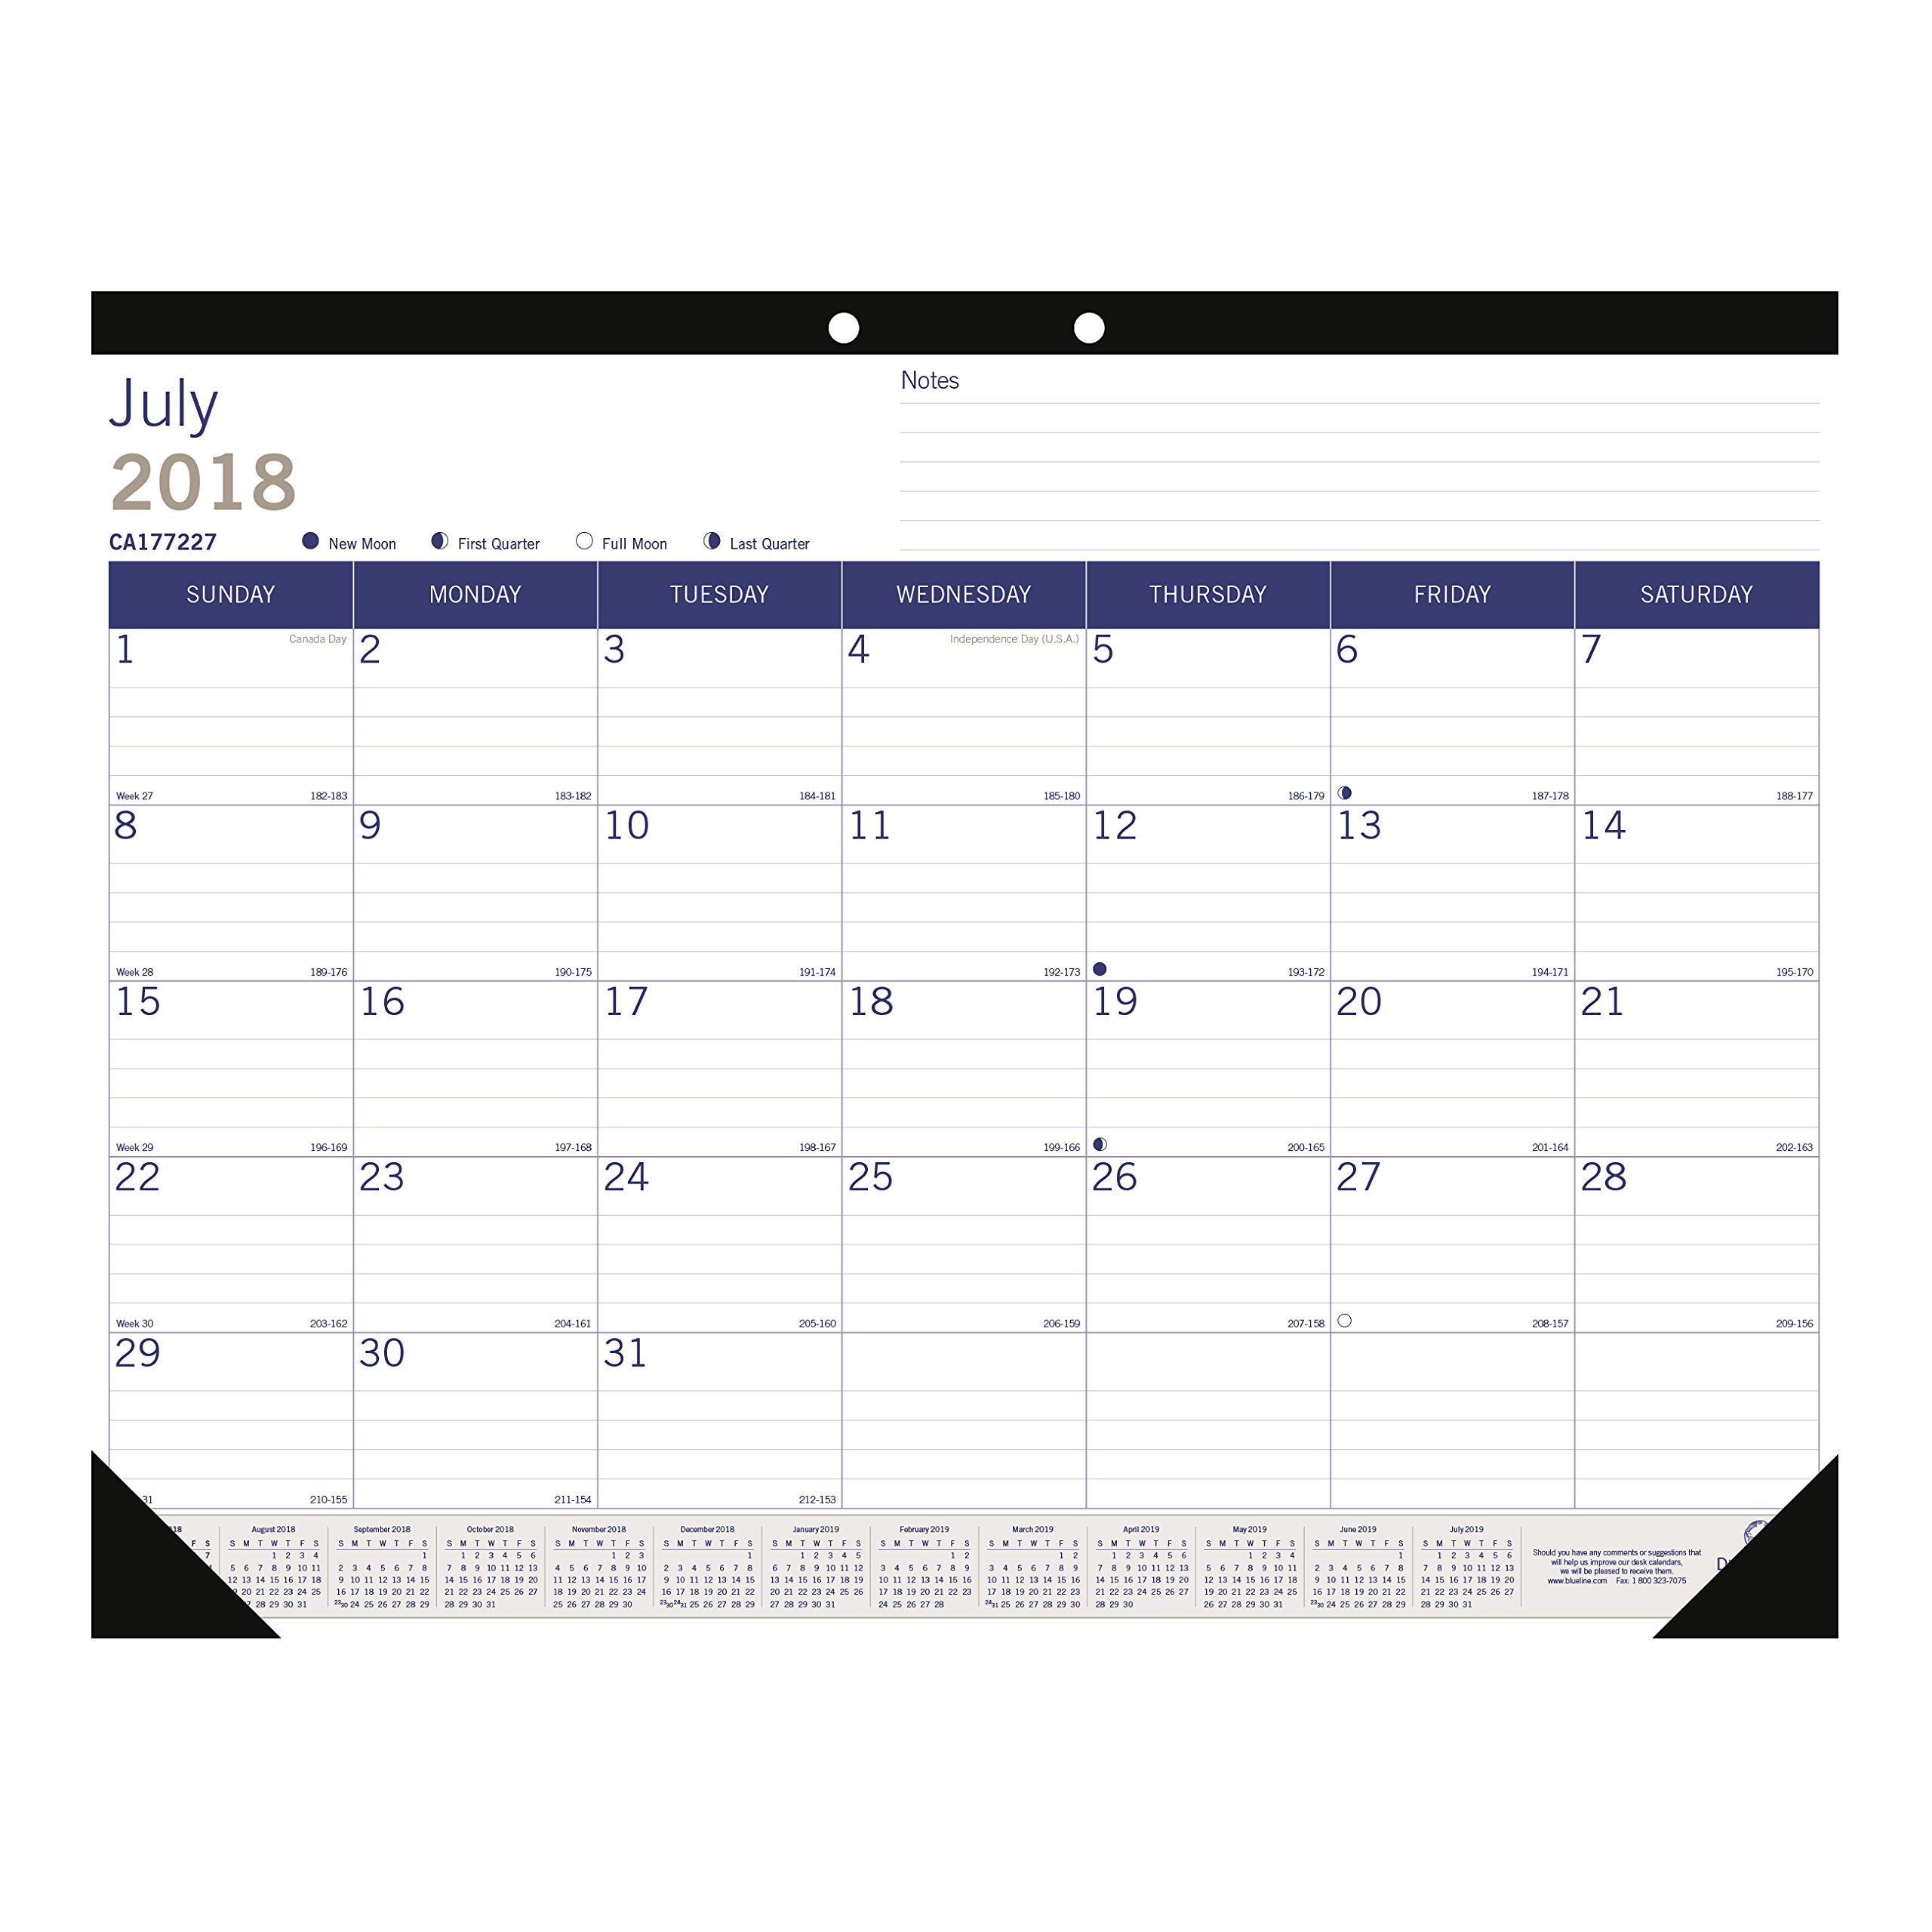 Blueline DuraGlobe Monthly Desk Pad Calendar, Academic, 13-Month, July 2018 to July 2019, 22 x 17 inches (CA177227-19) by Blueline